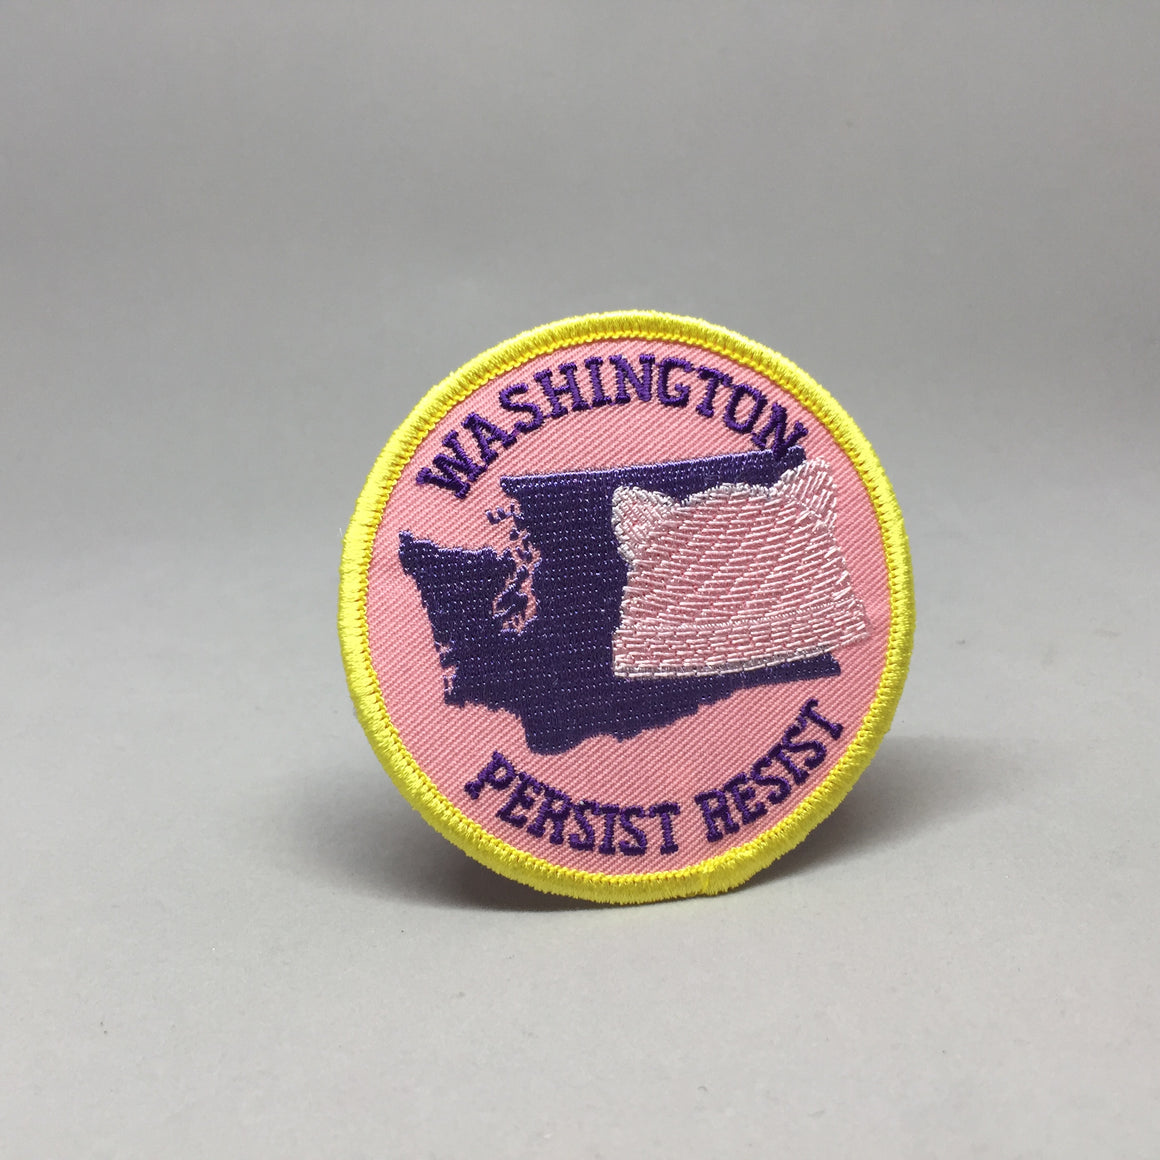 WASHINGTON PERSIST RESIST Patch